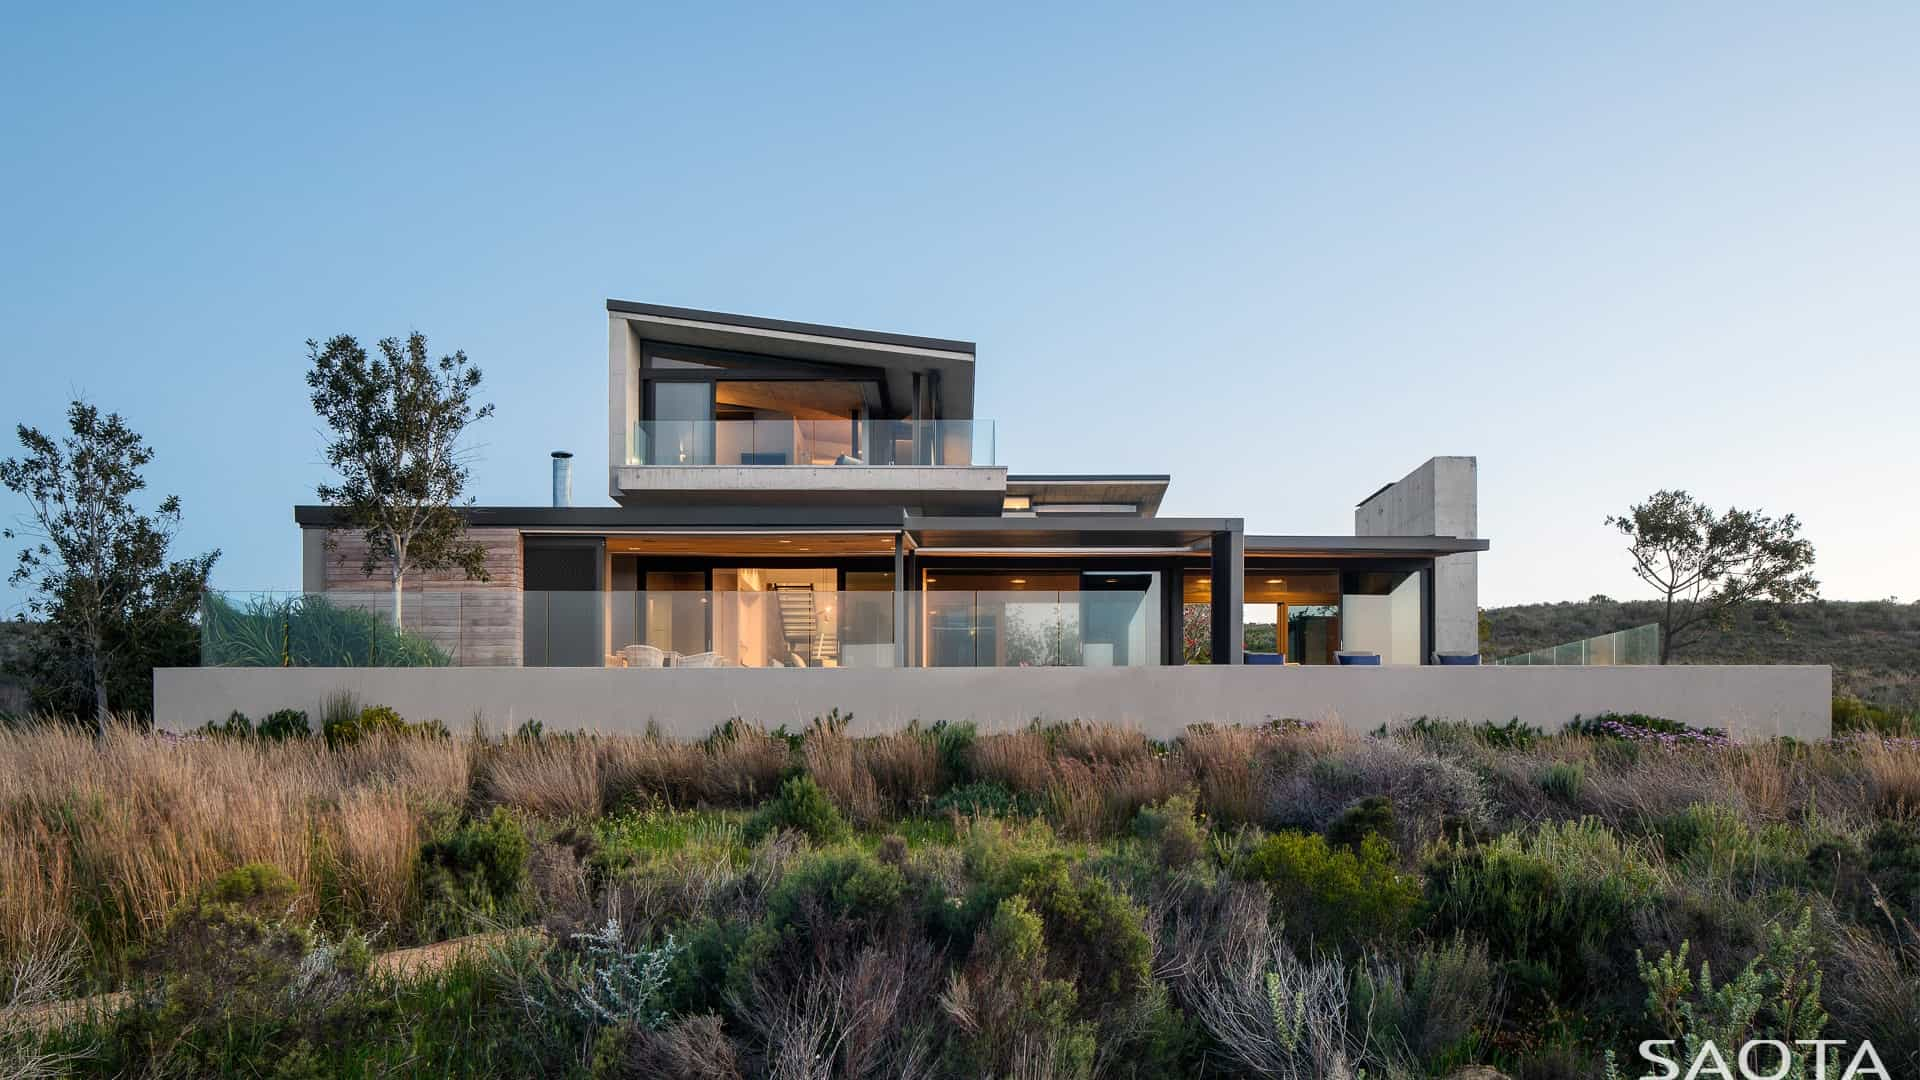 The home's outdoor view features its amazing building structure and landscaping.